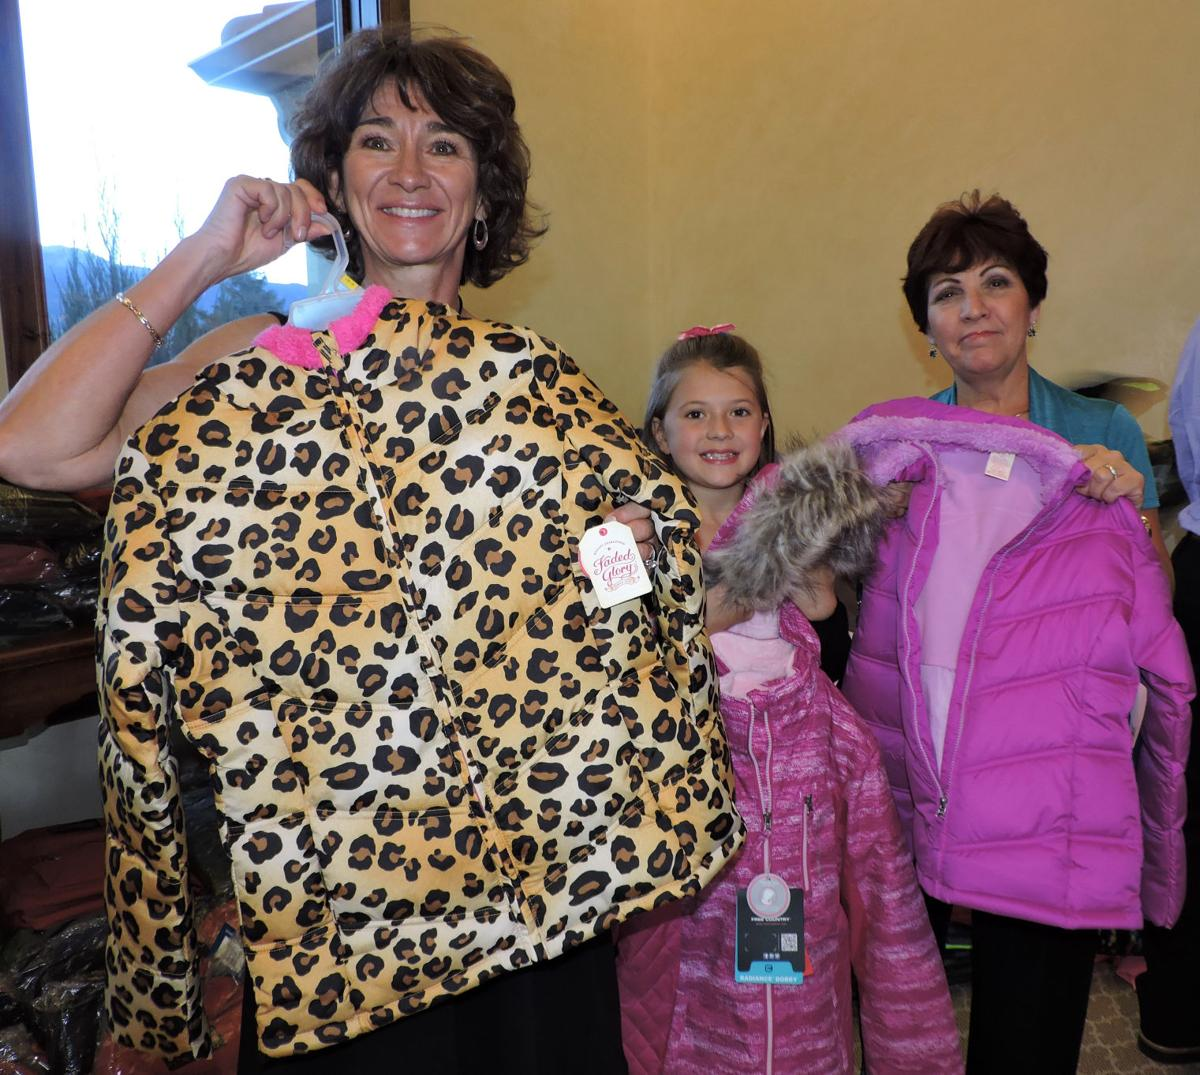 Koats 4 Kids donations: from left, Mary Ann Arkfeld, Maddy Fish and Maryann Krause. 102116 Photo by Linda Navarro